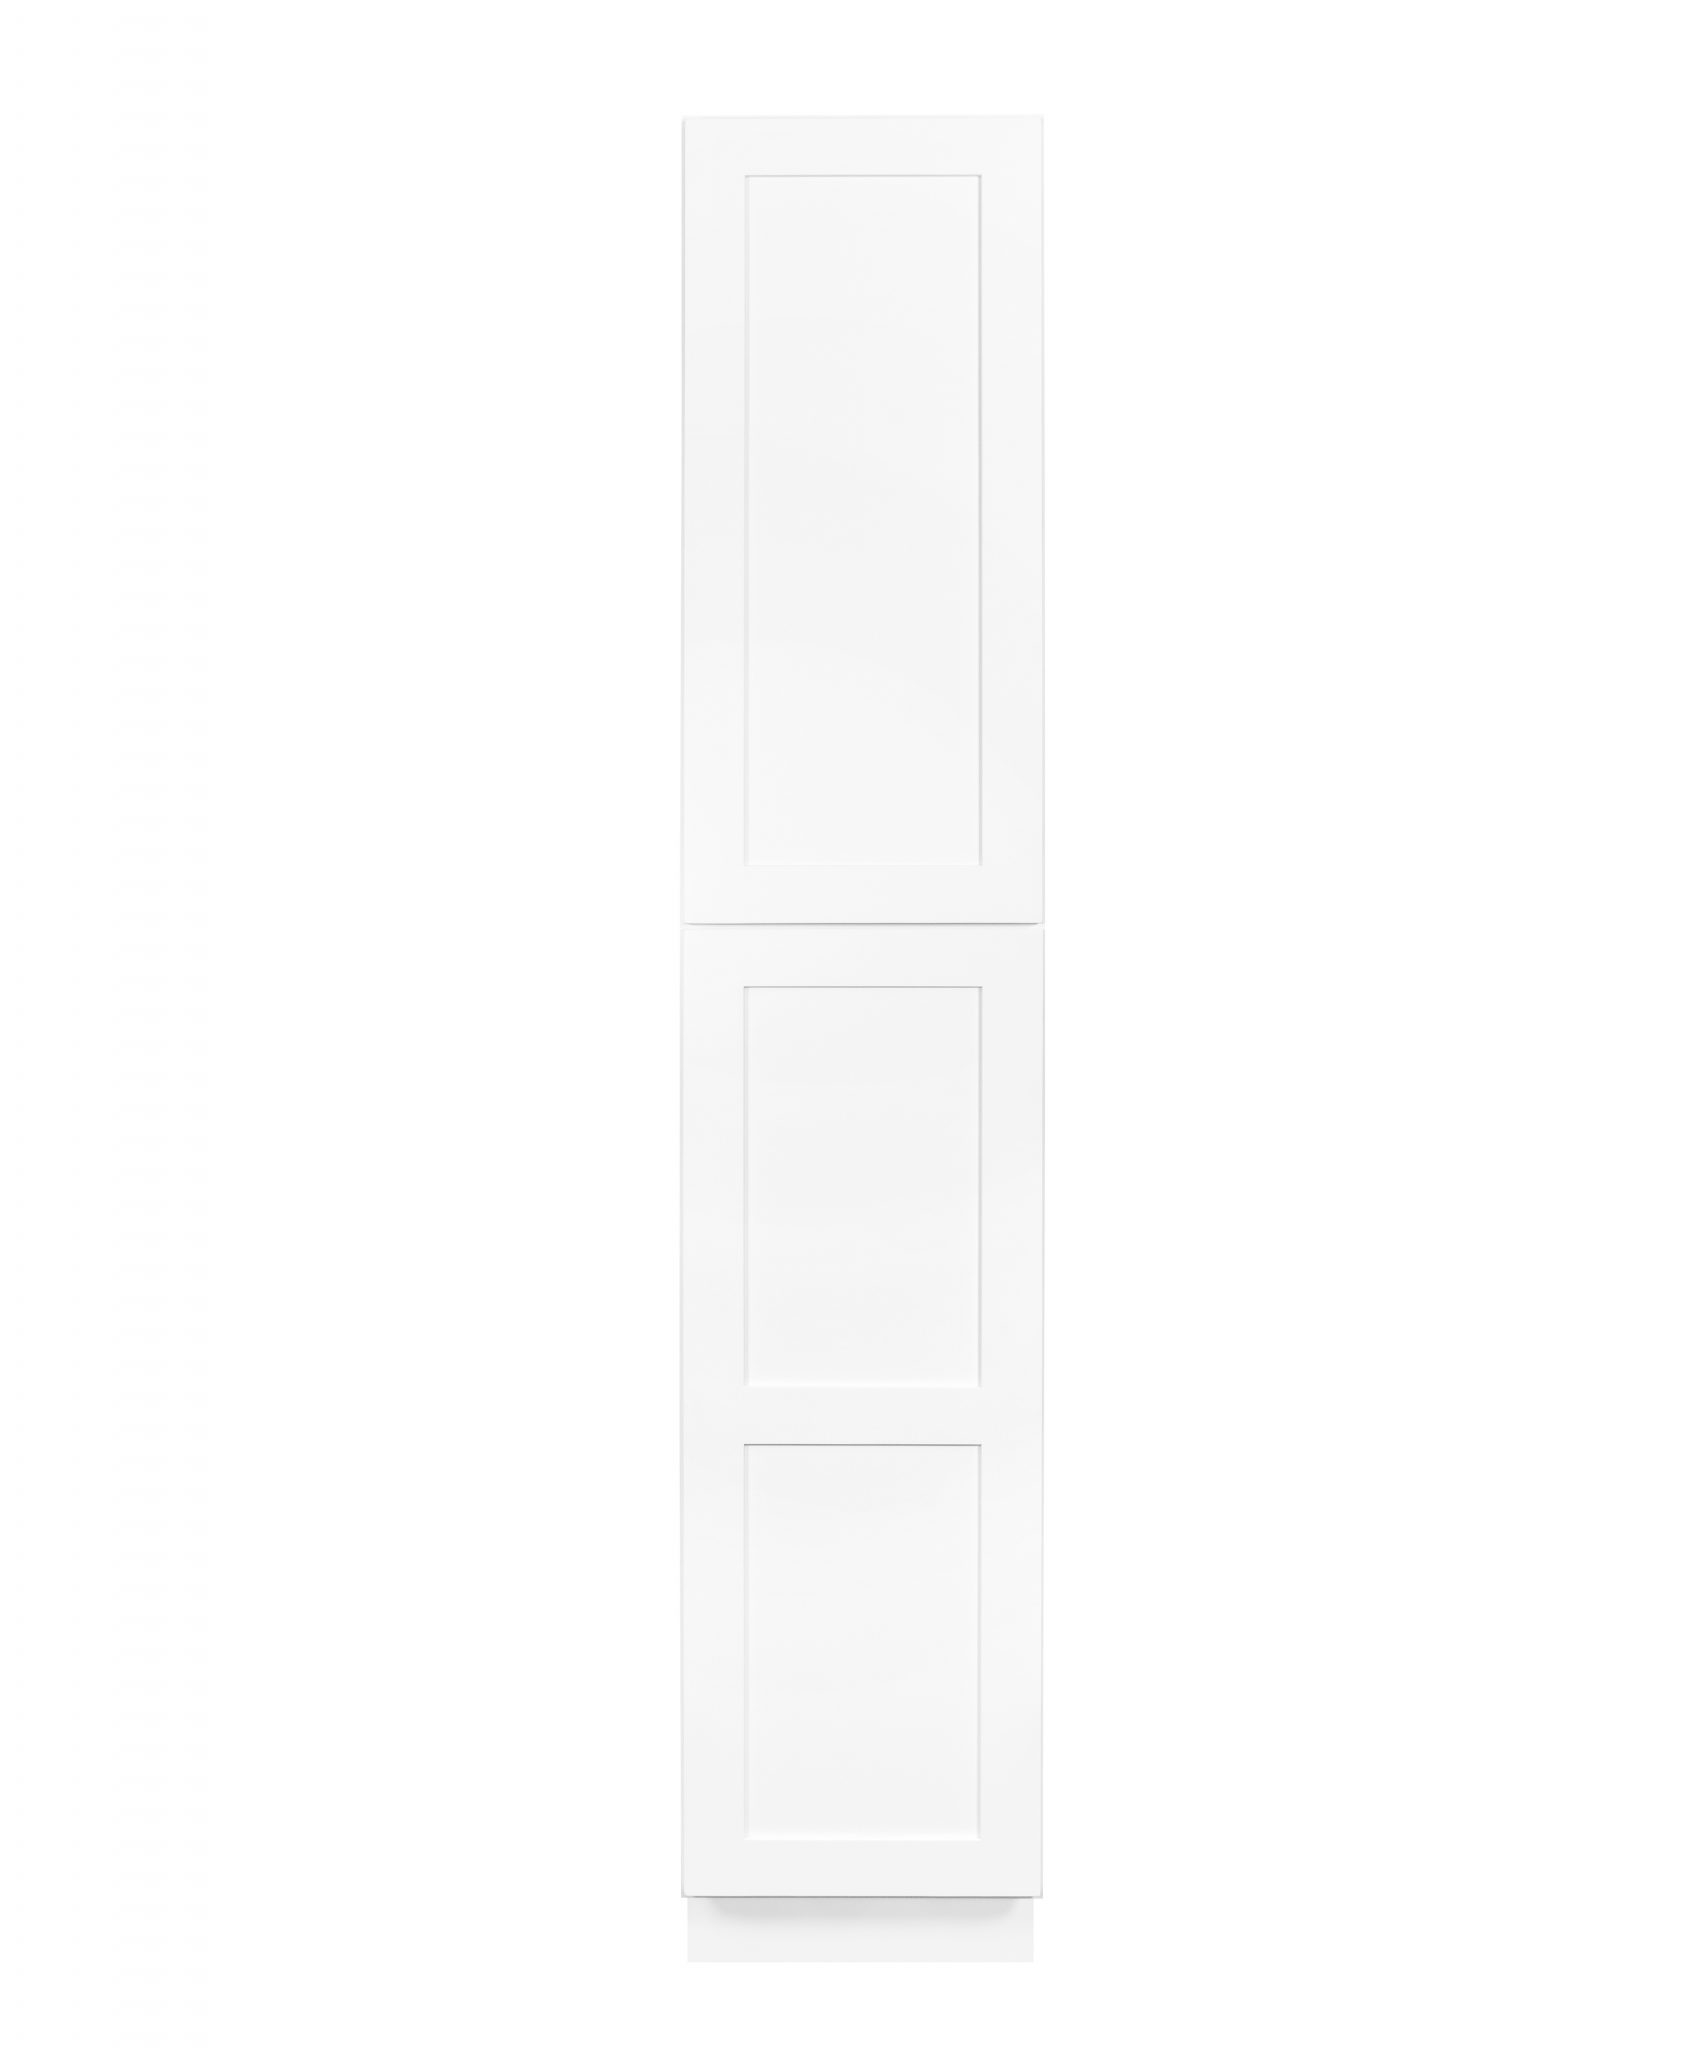 White Shaker Cabinetry P18